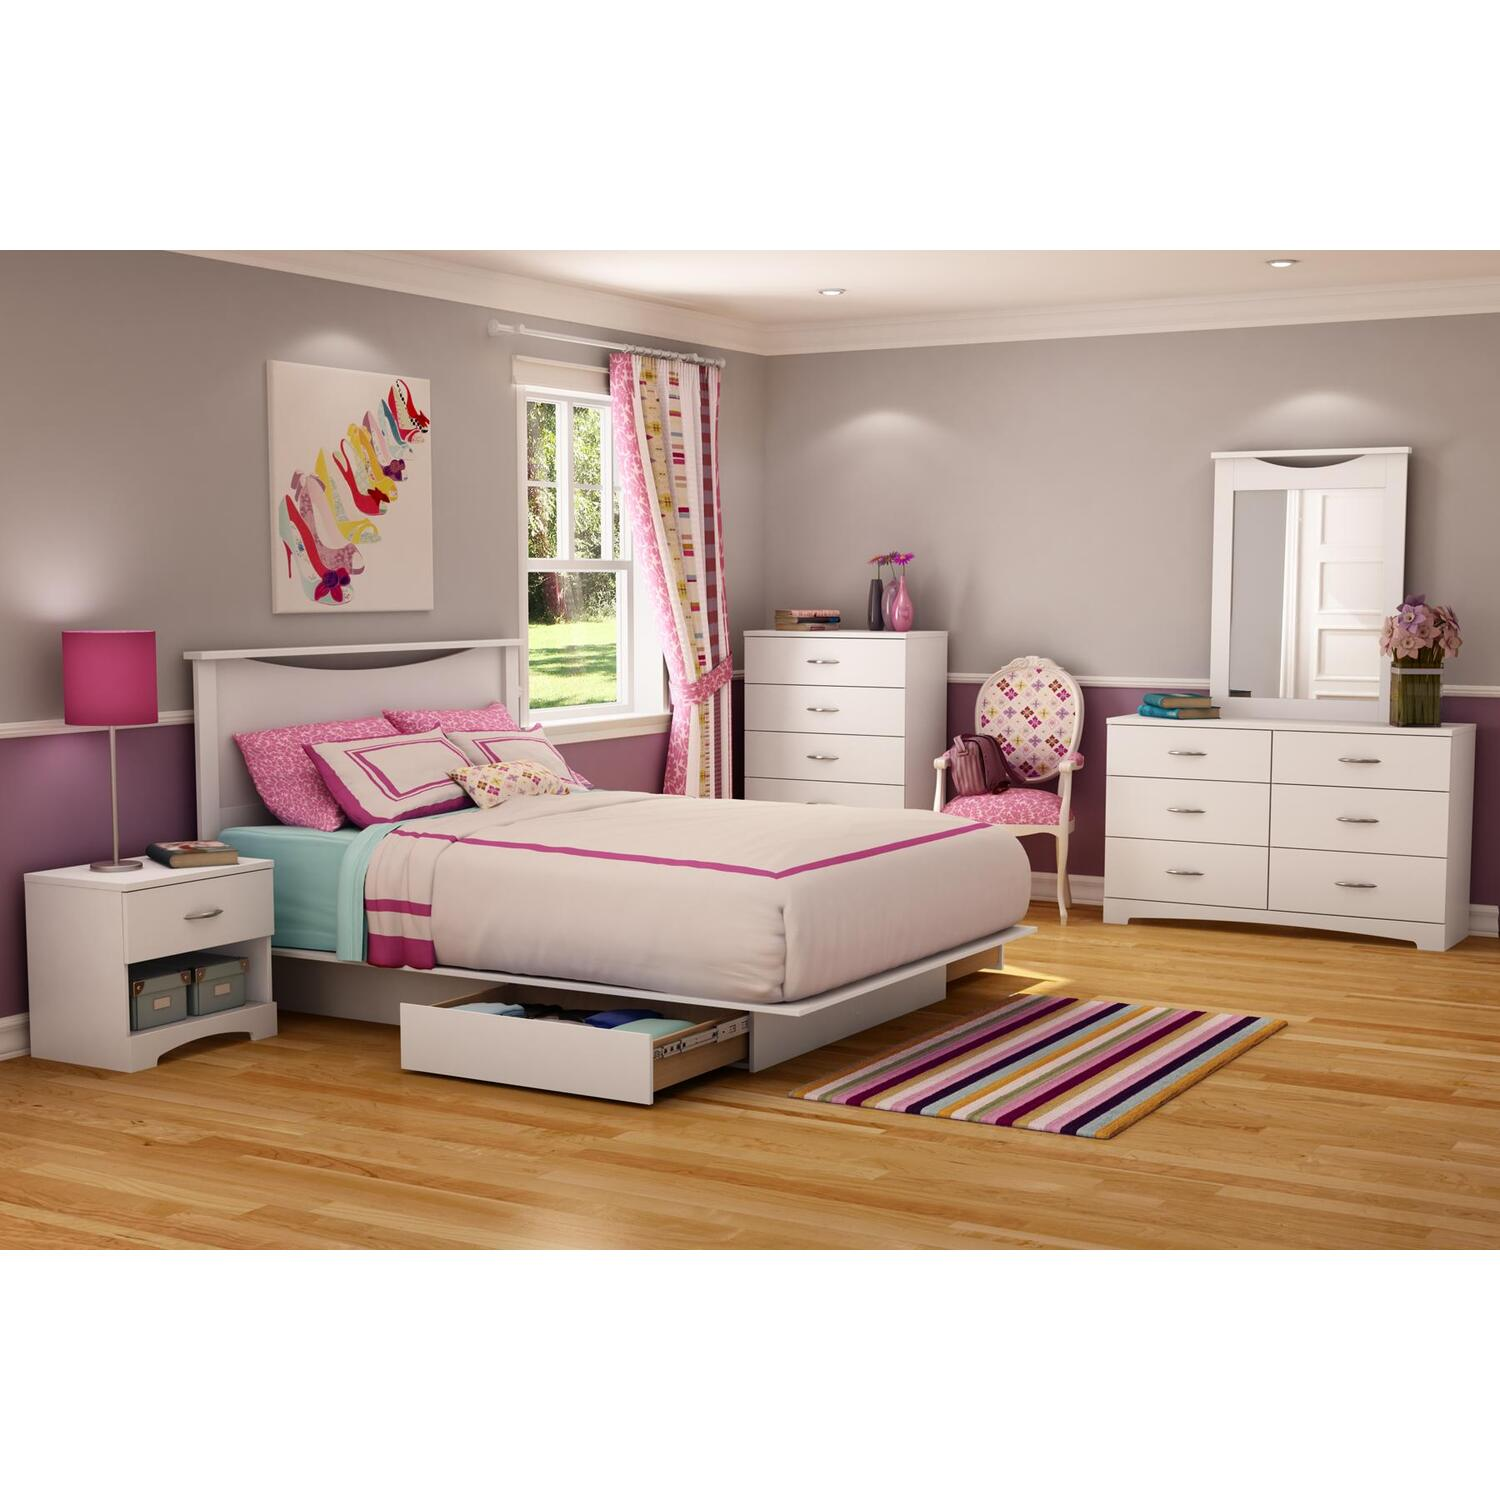 Step one full queen 6 piece bedroom set in pure white for White full bedroom set